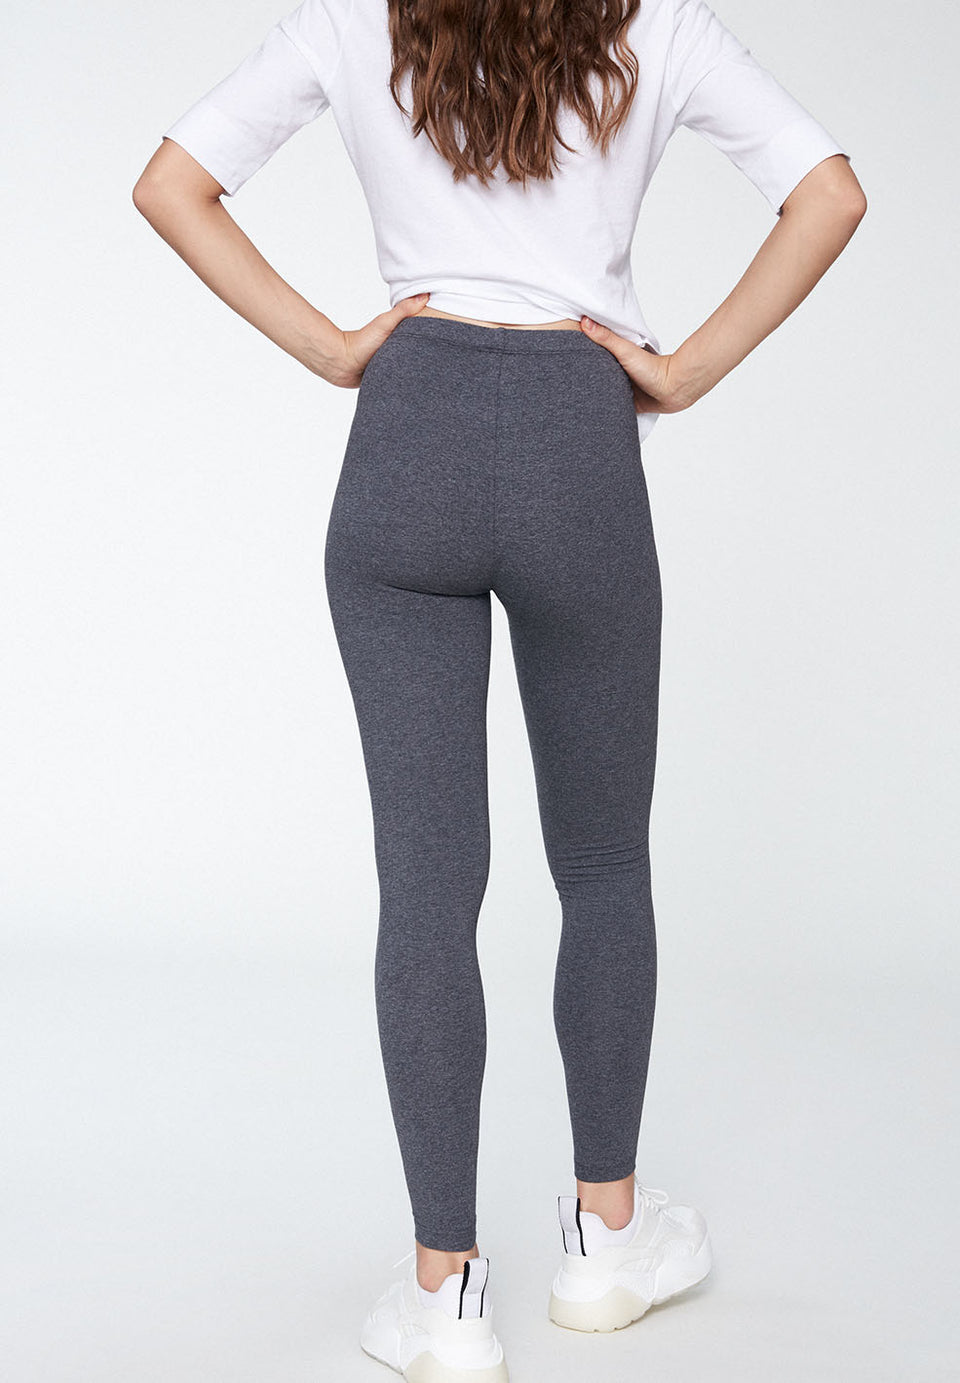 Shivaa Leggings in Dark Grey